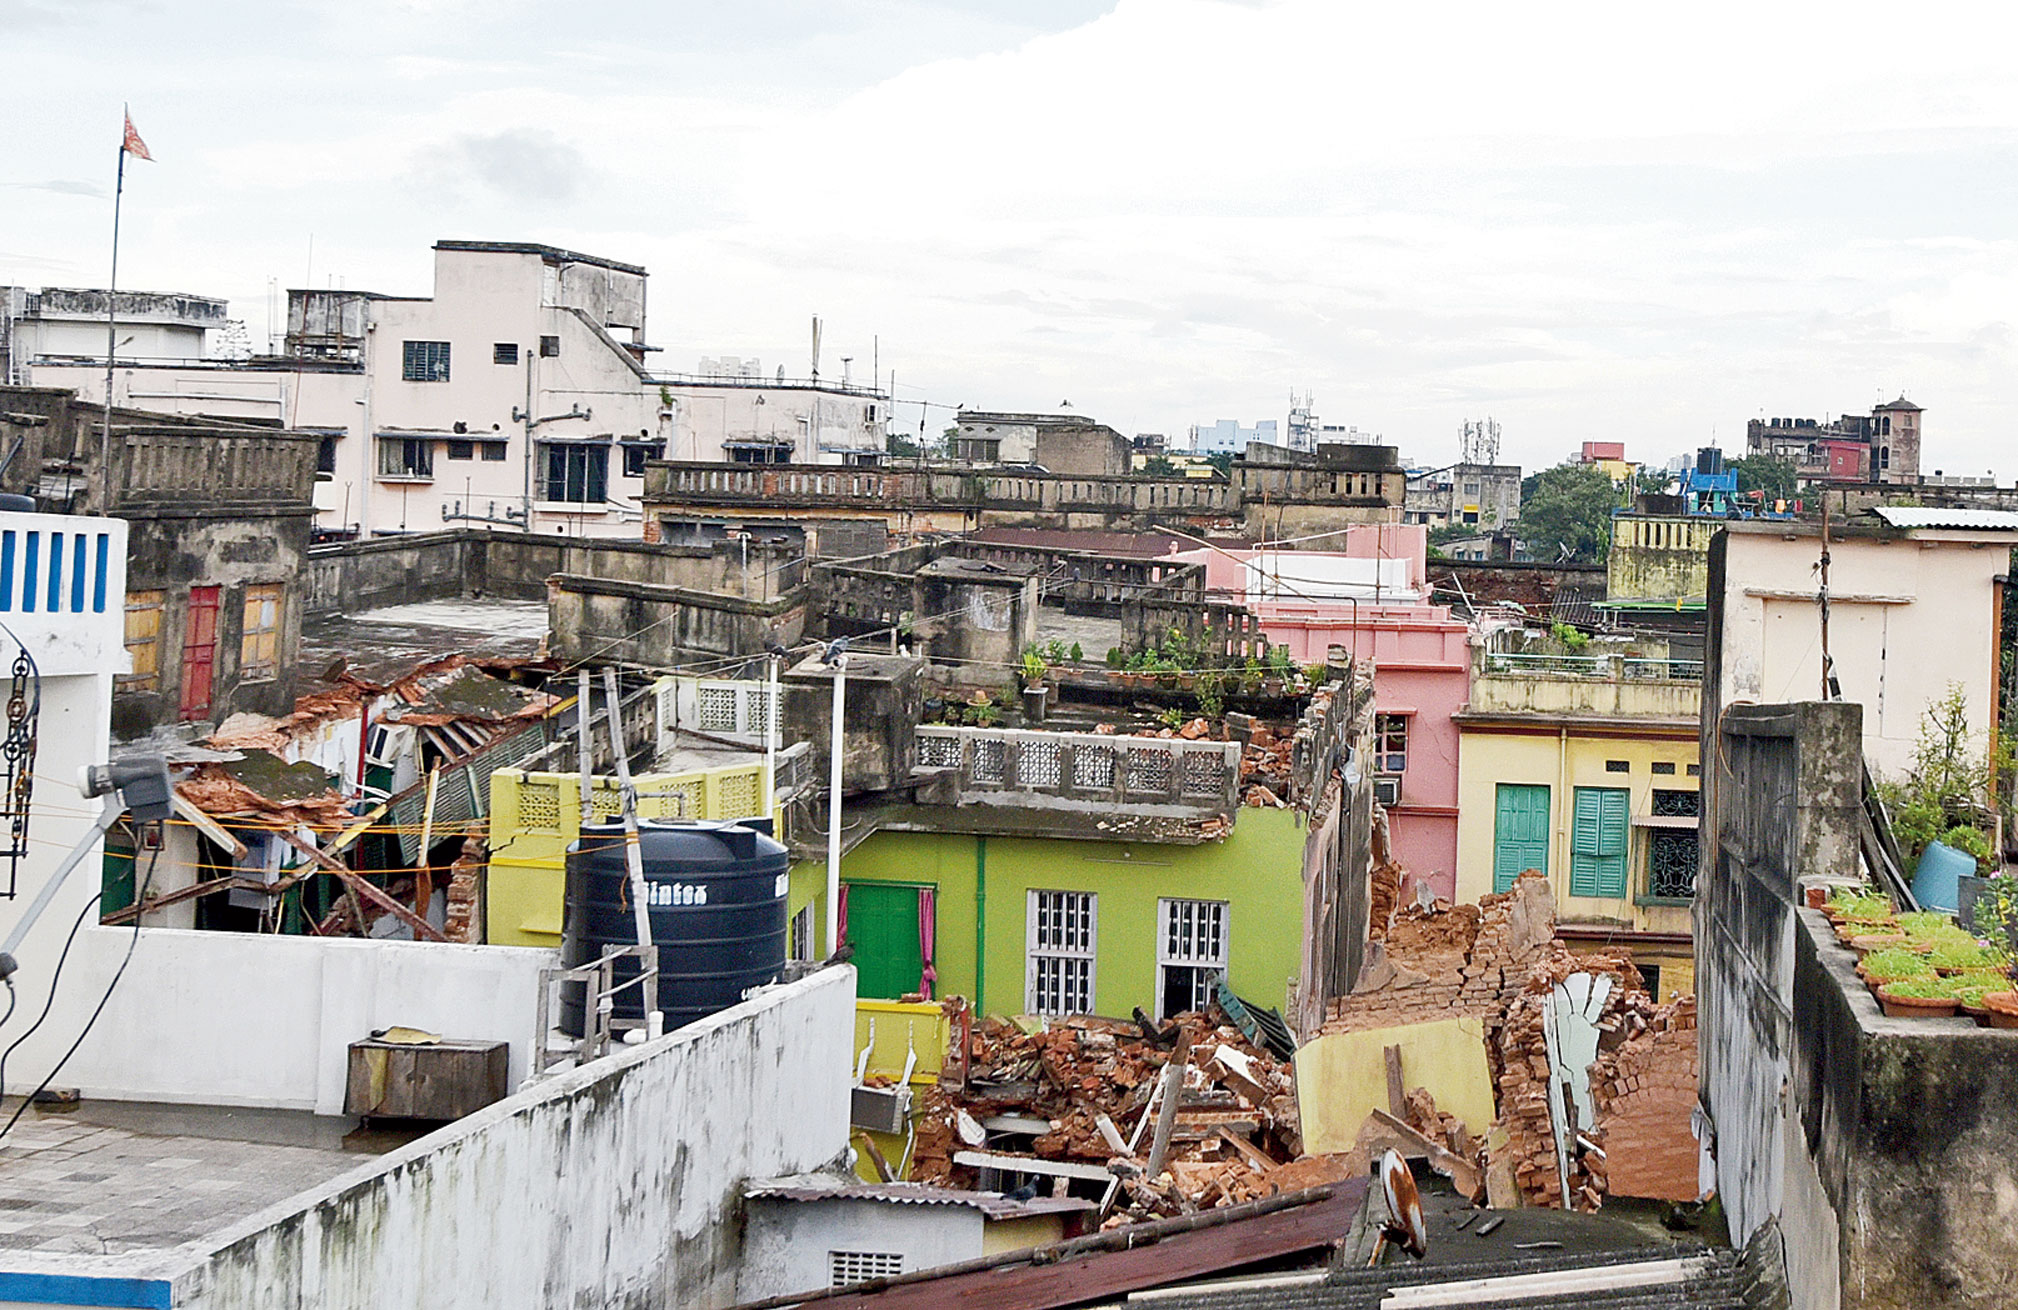 Buildings in Durga Pituri Lane, Bowbazar, that have collapsed because of the East-West Metro's tunnel-boring work.